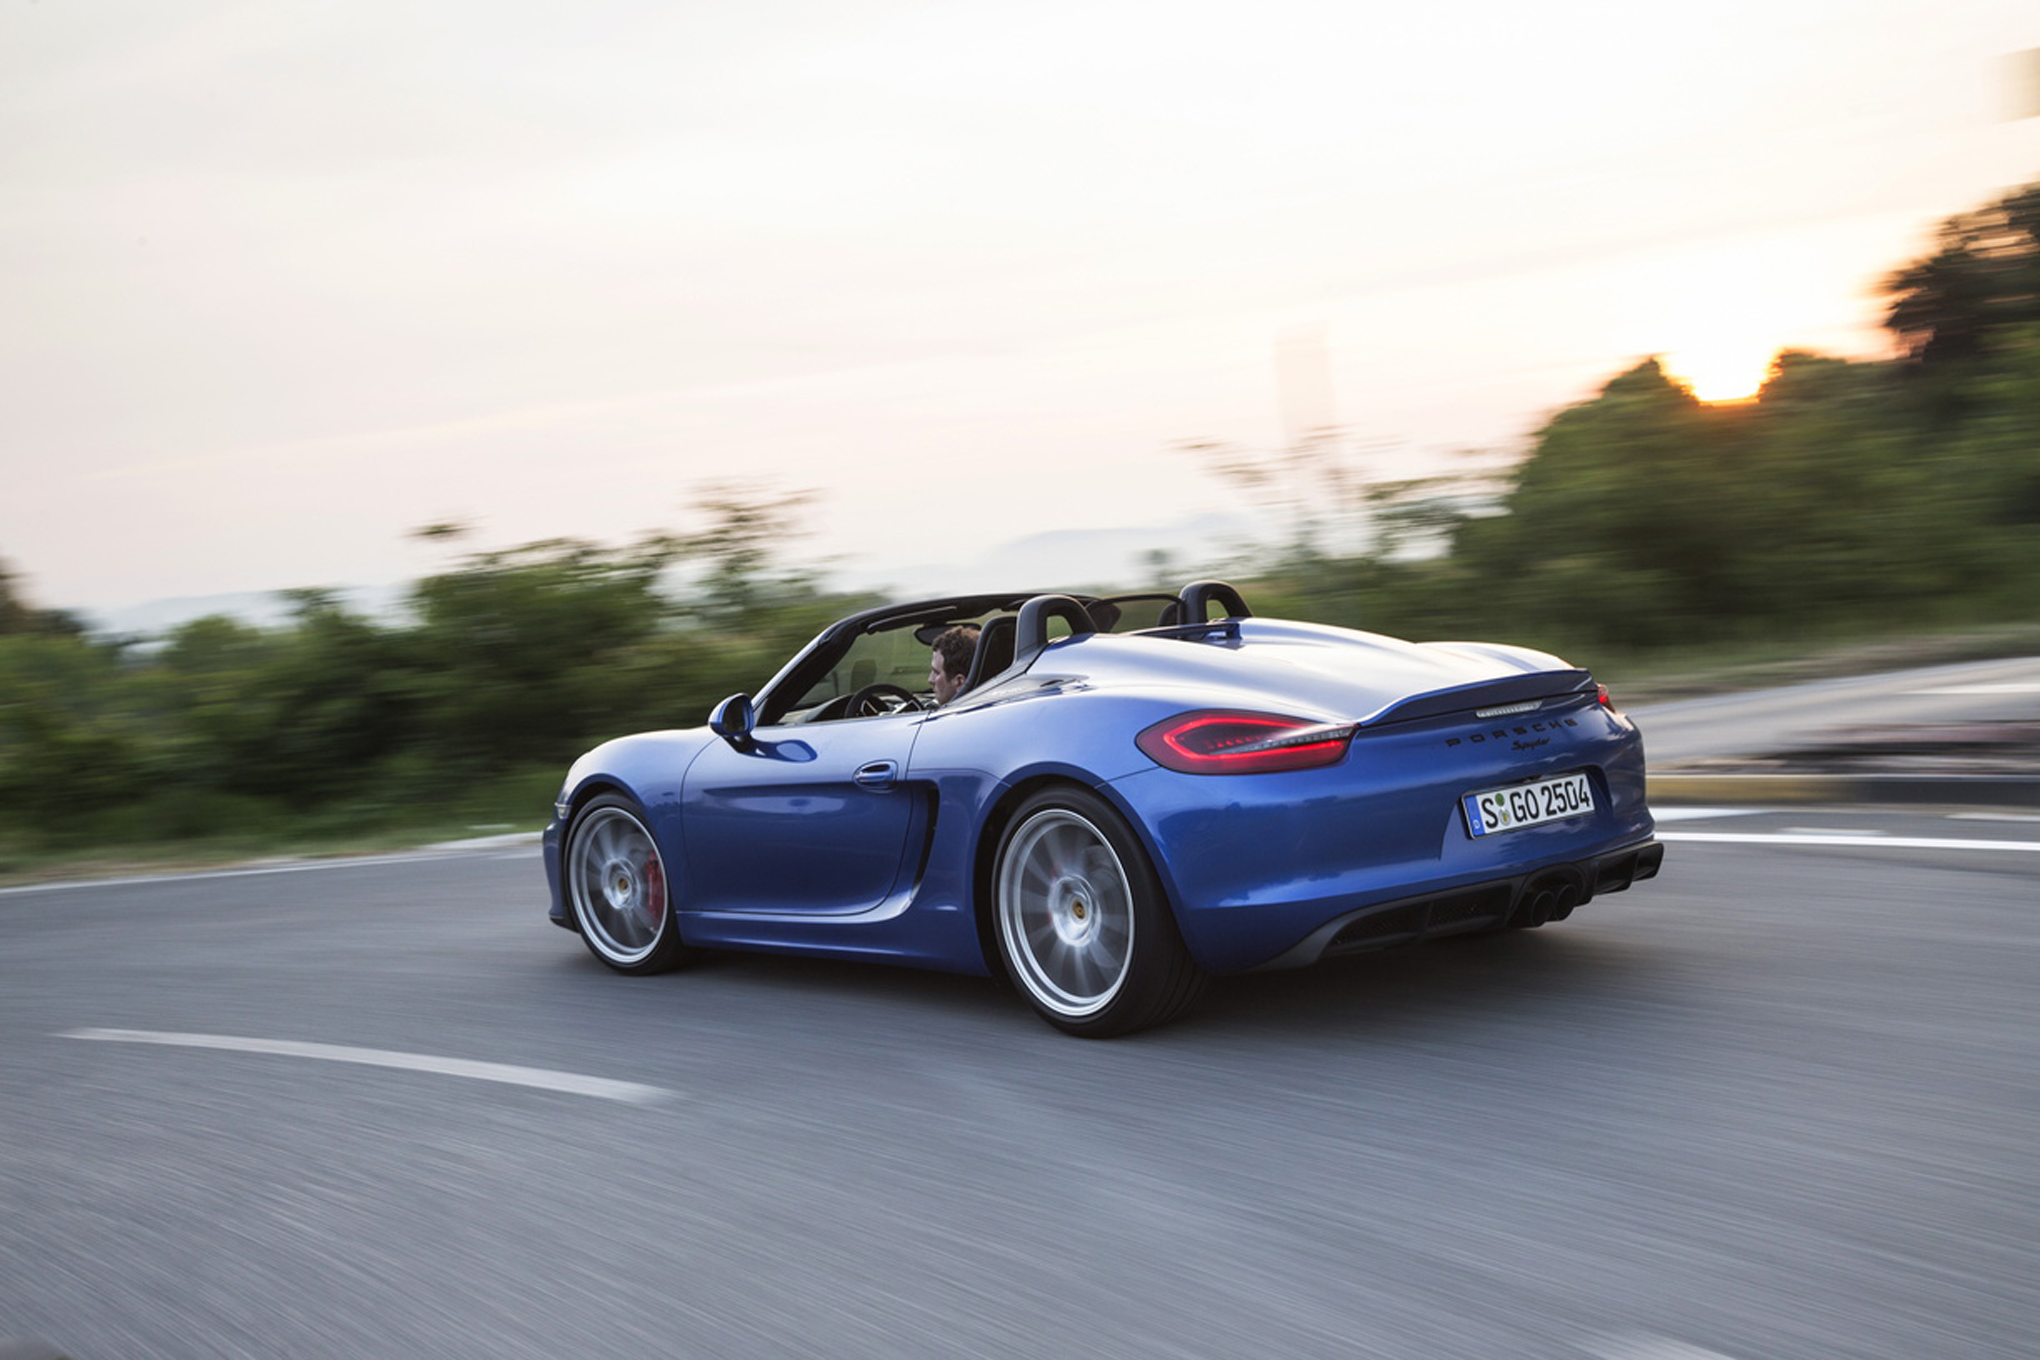 2017 Porsche Boxster Spyder photo - 4